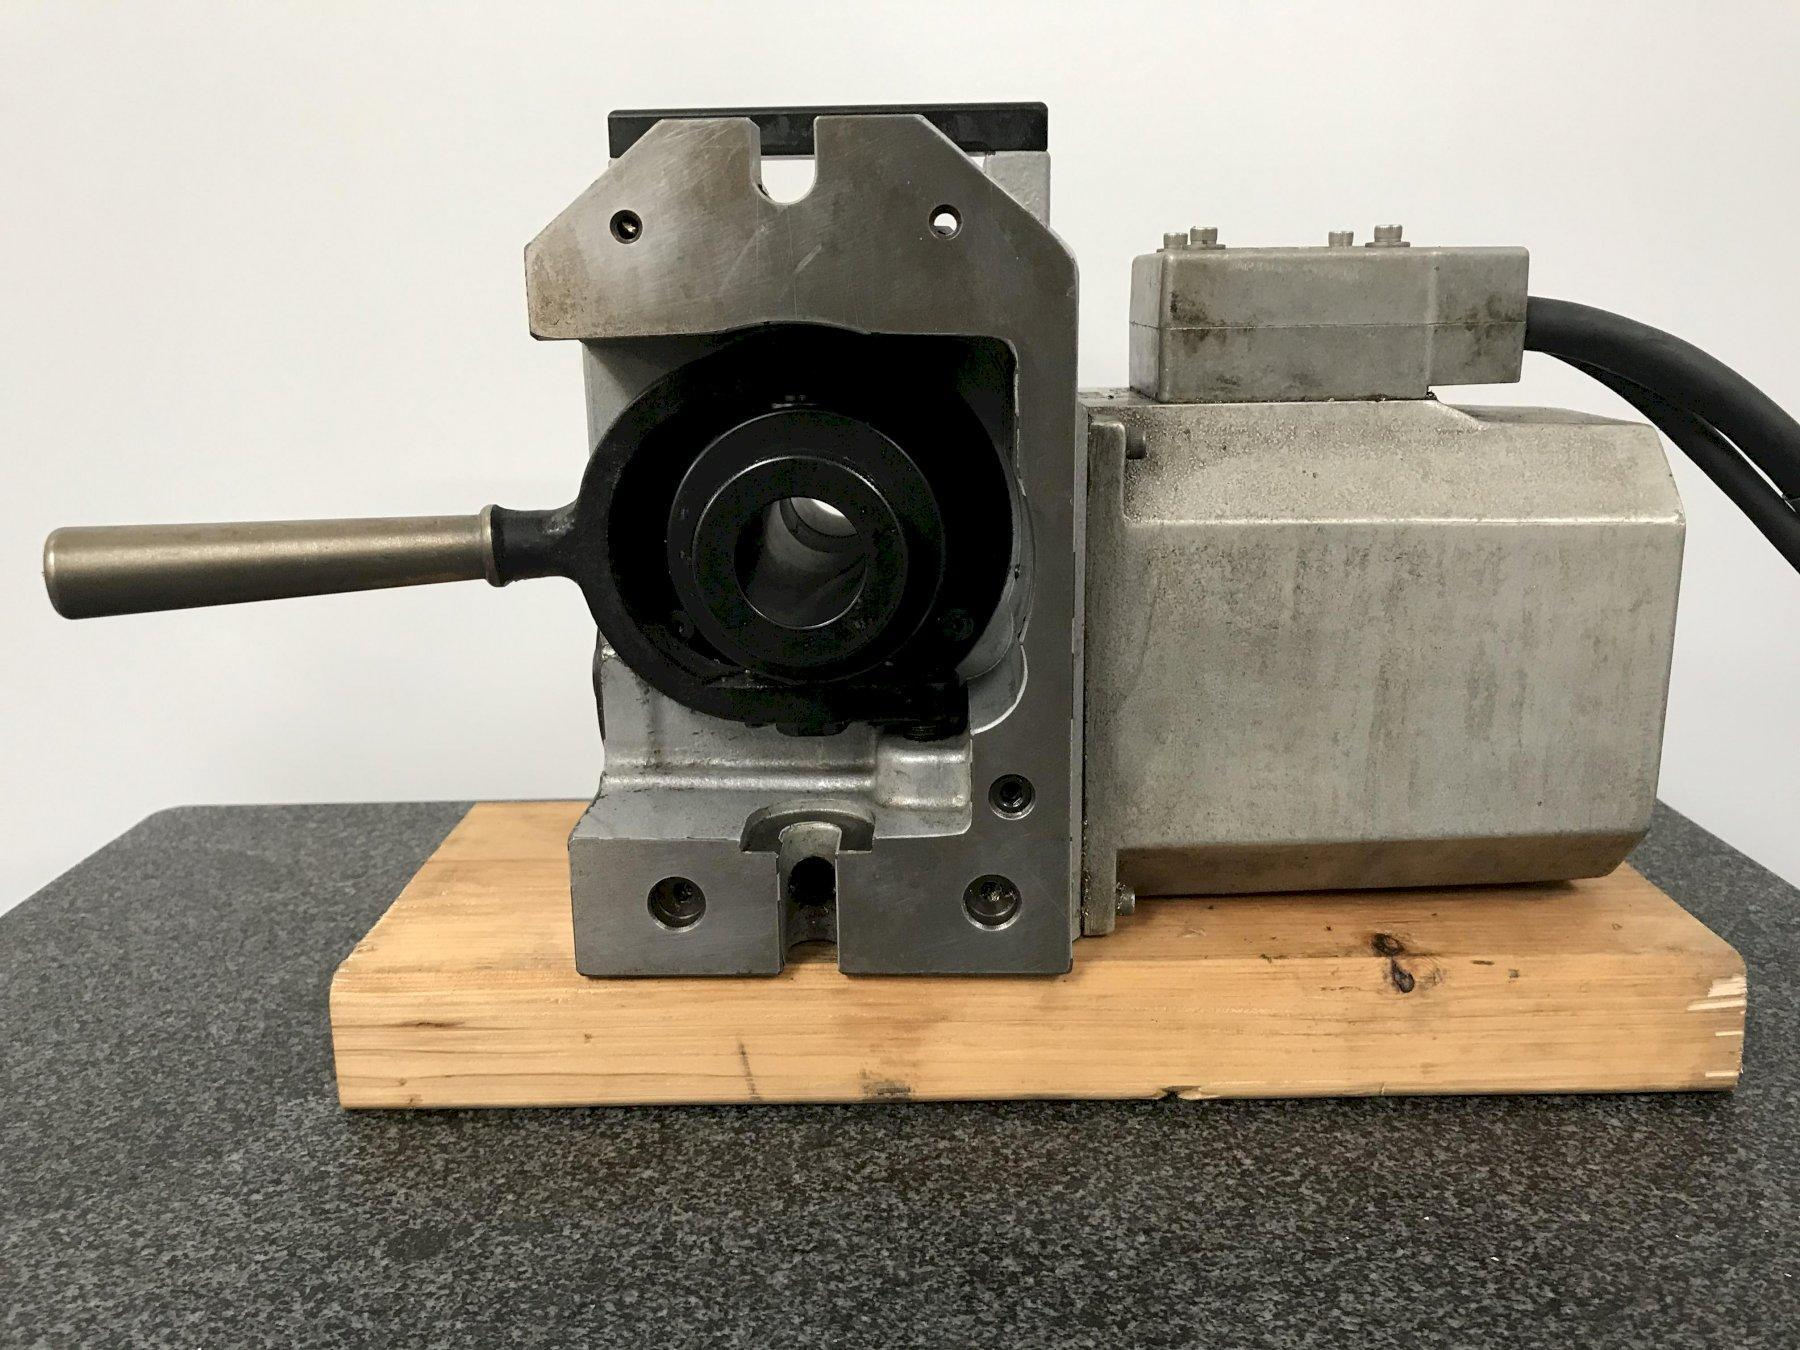 Haas HA5C Programmable Rotary Table, Brushless Drive Motor, Hand Lever Collet Closer, and Cables.